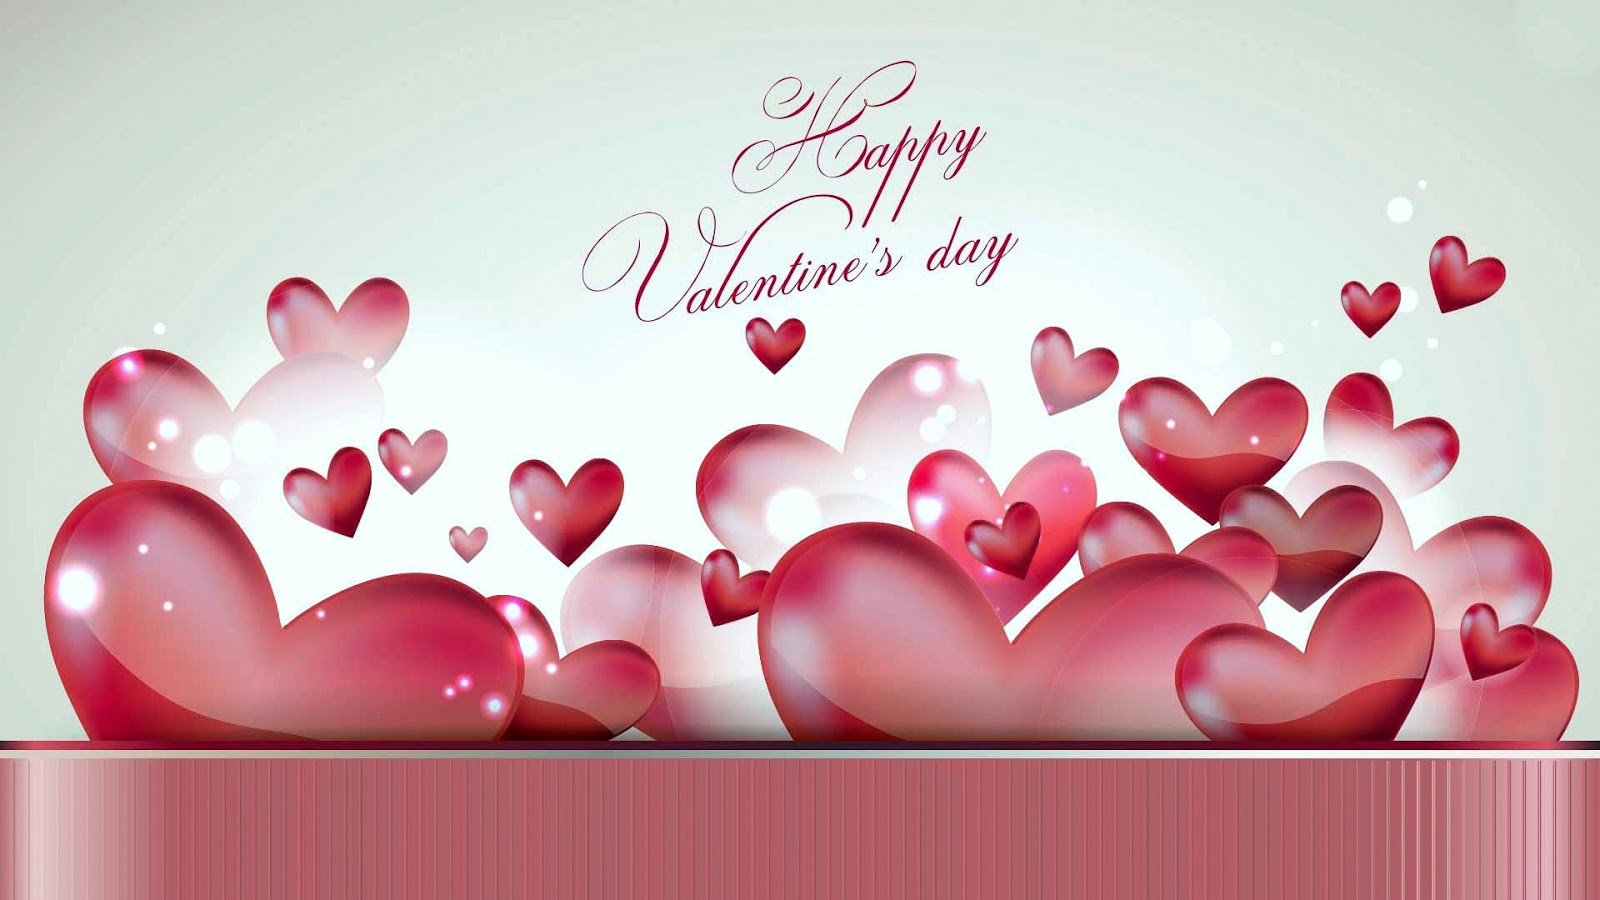 download cool happy valentines day image for iphone computer backgrounds